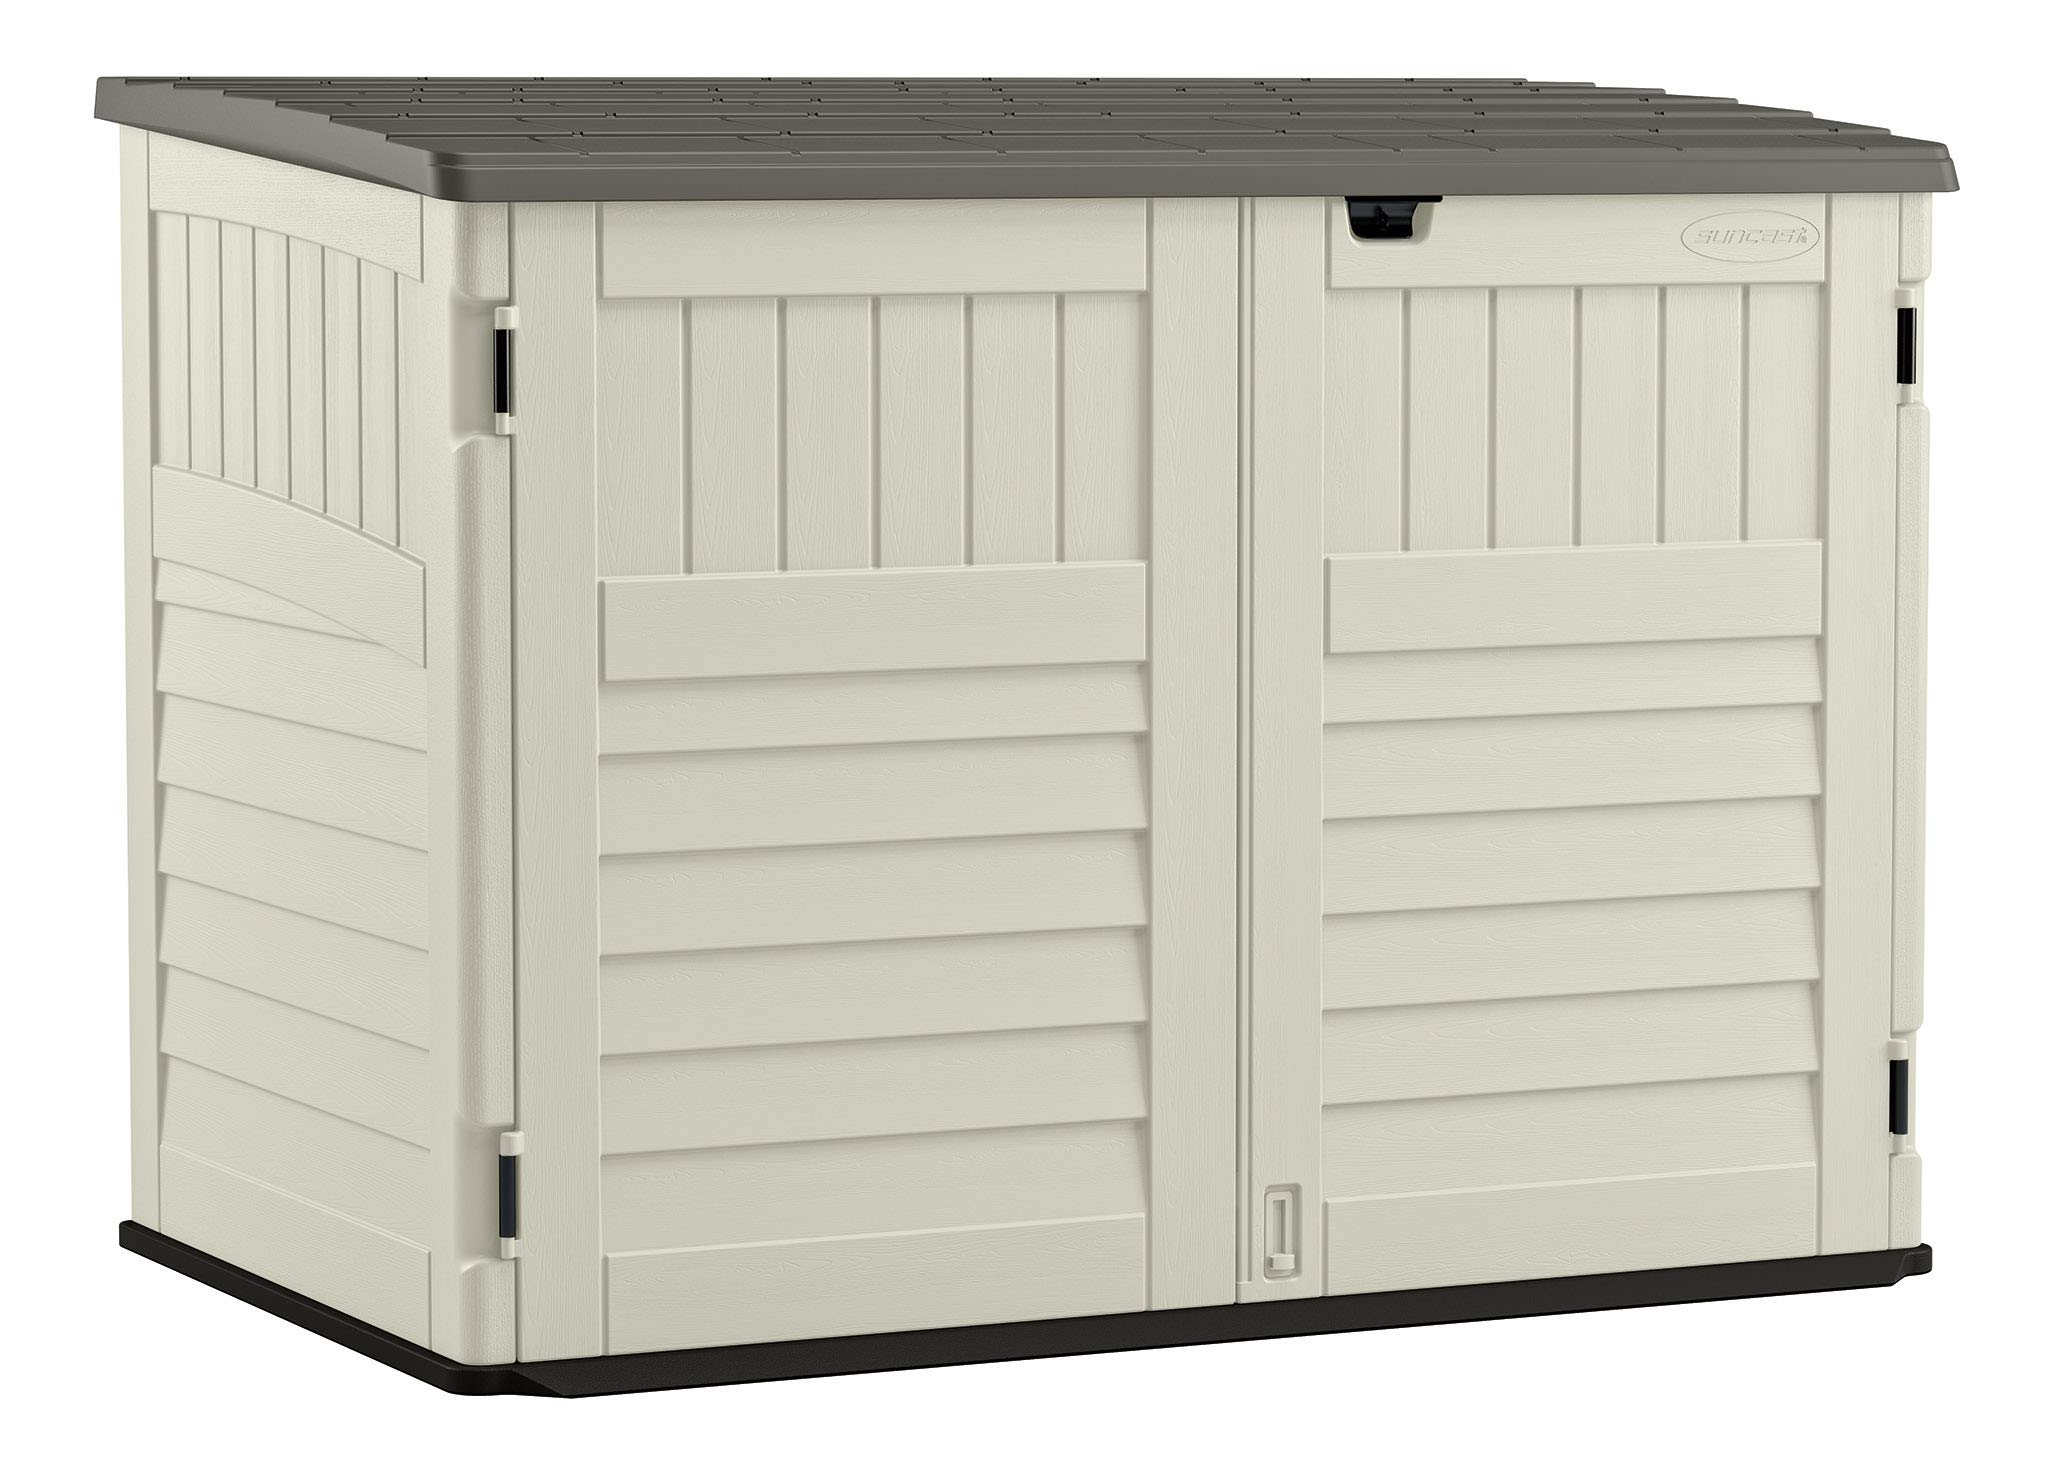 Suncast Stow - Away Horizontal Storage Shed - Outdoor Storage Shed for Backyards and Patios - 70 Cubic Feet Capacity for Garbage Cans, Tools and Garden Accessories - Vanilla and Stoney by Suncast